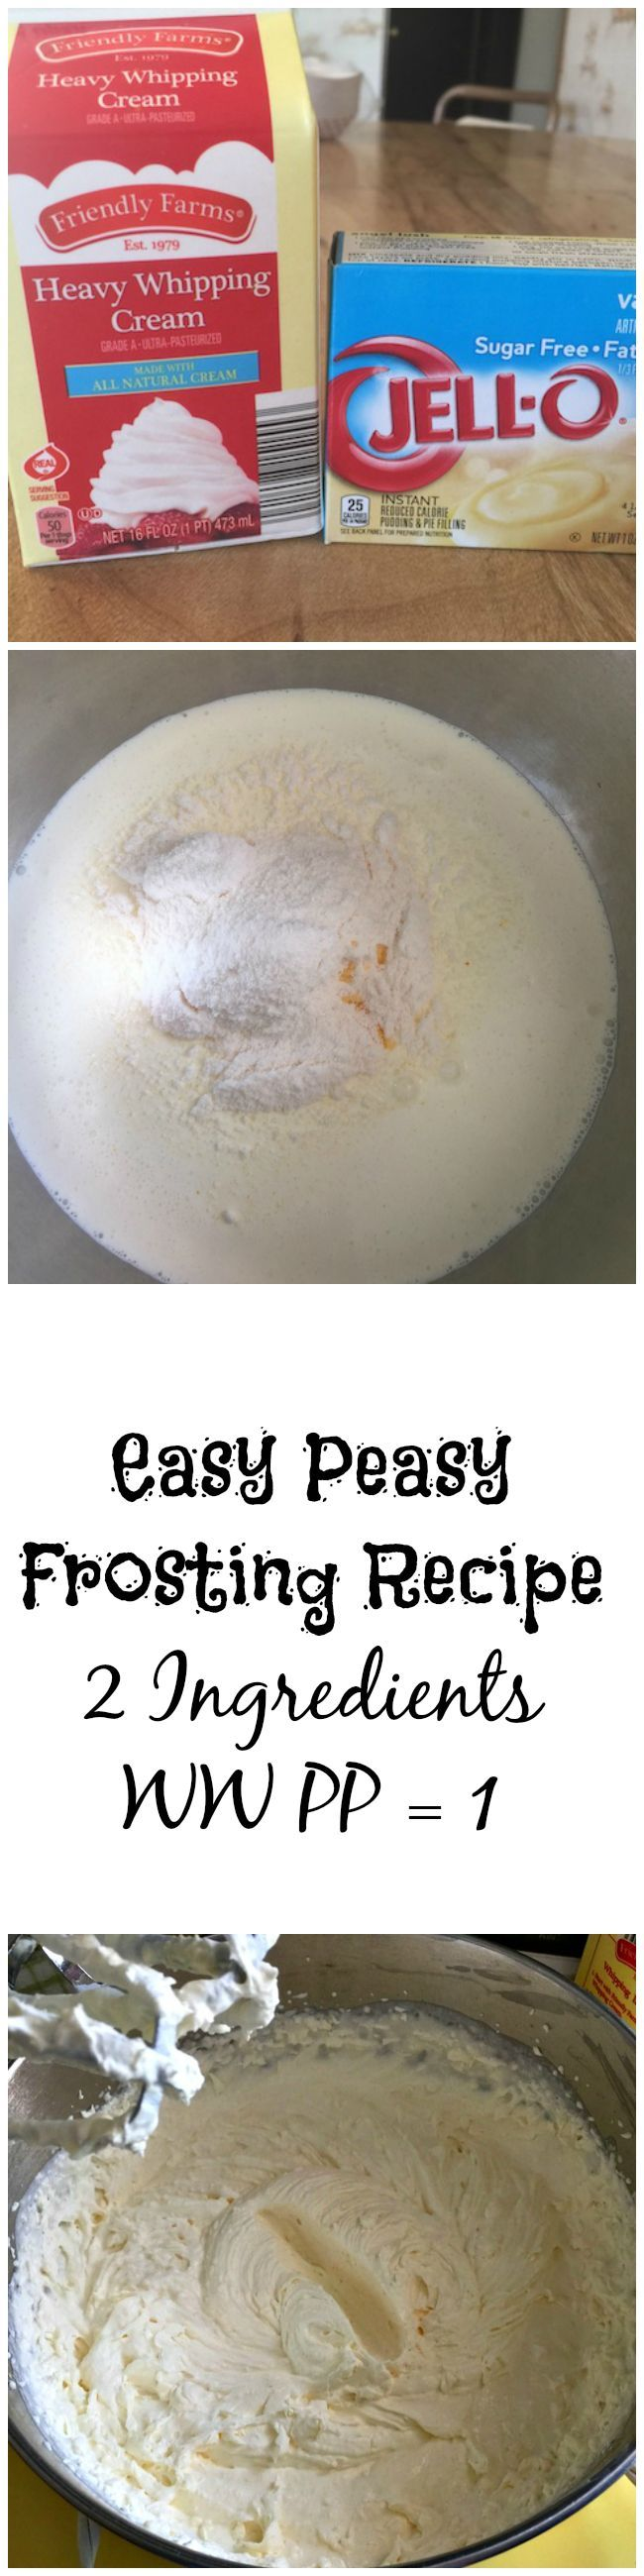 I have been making this frosting recipe for most of my life. I am not a fan of butter cream frosting, it's way too sweet. And with only 1 WW PP, it's easy!